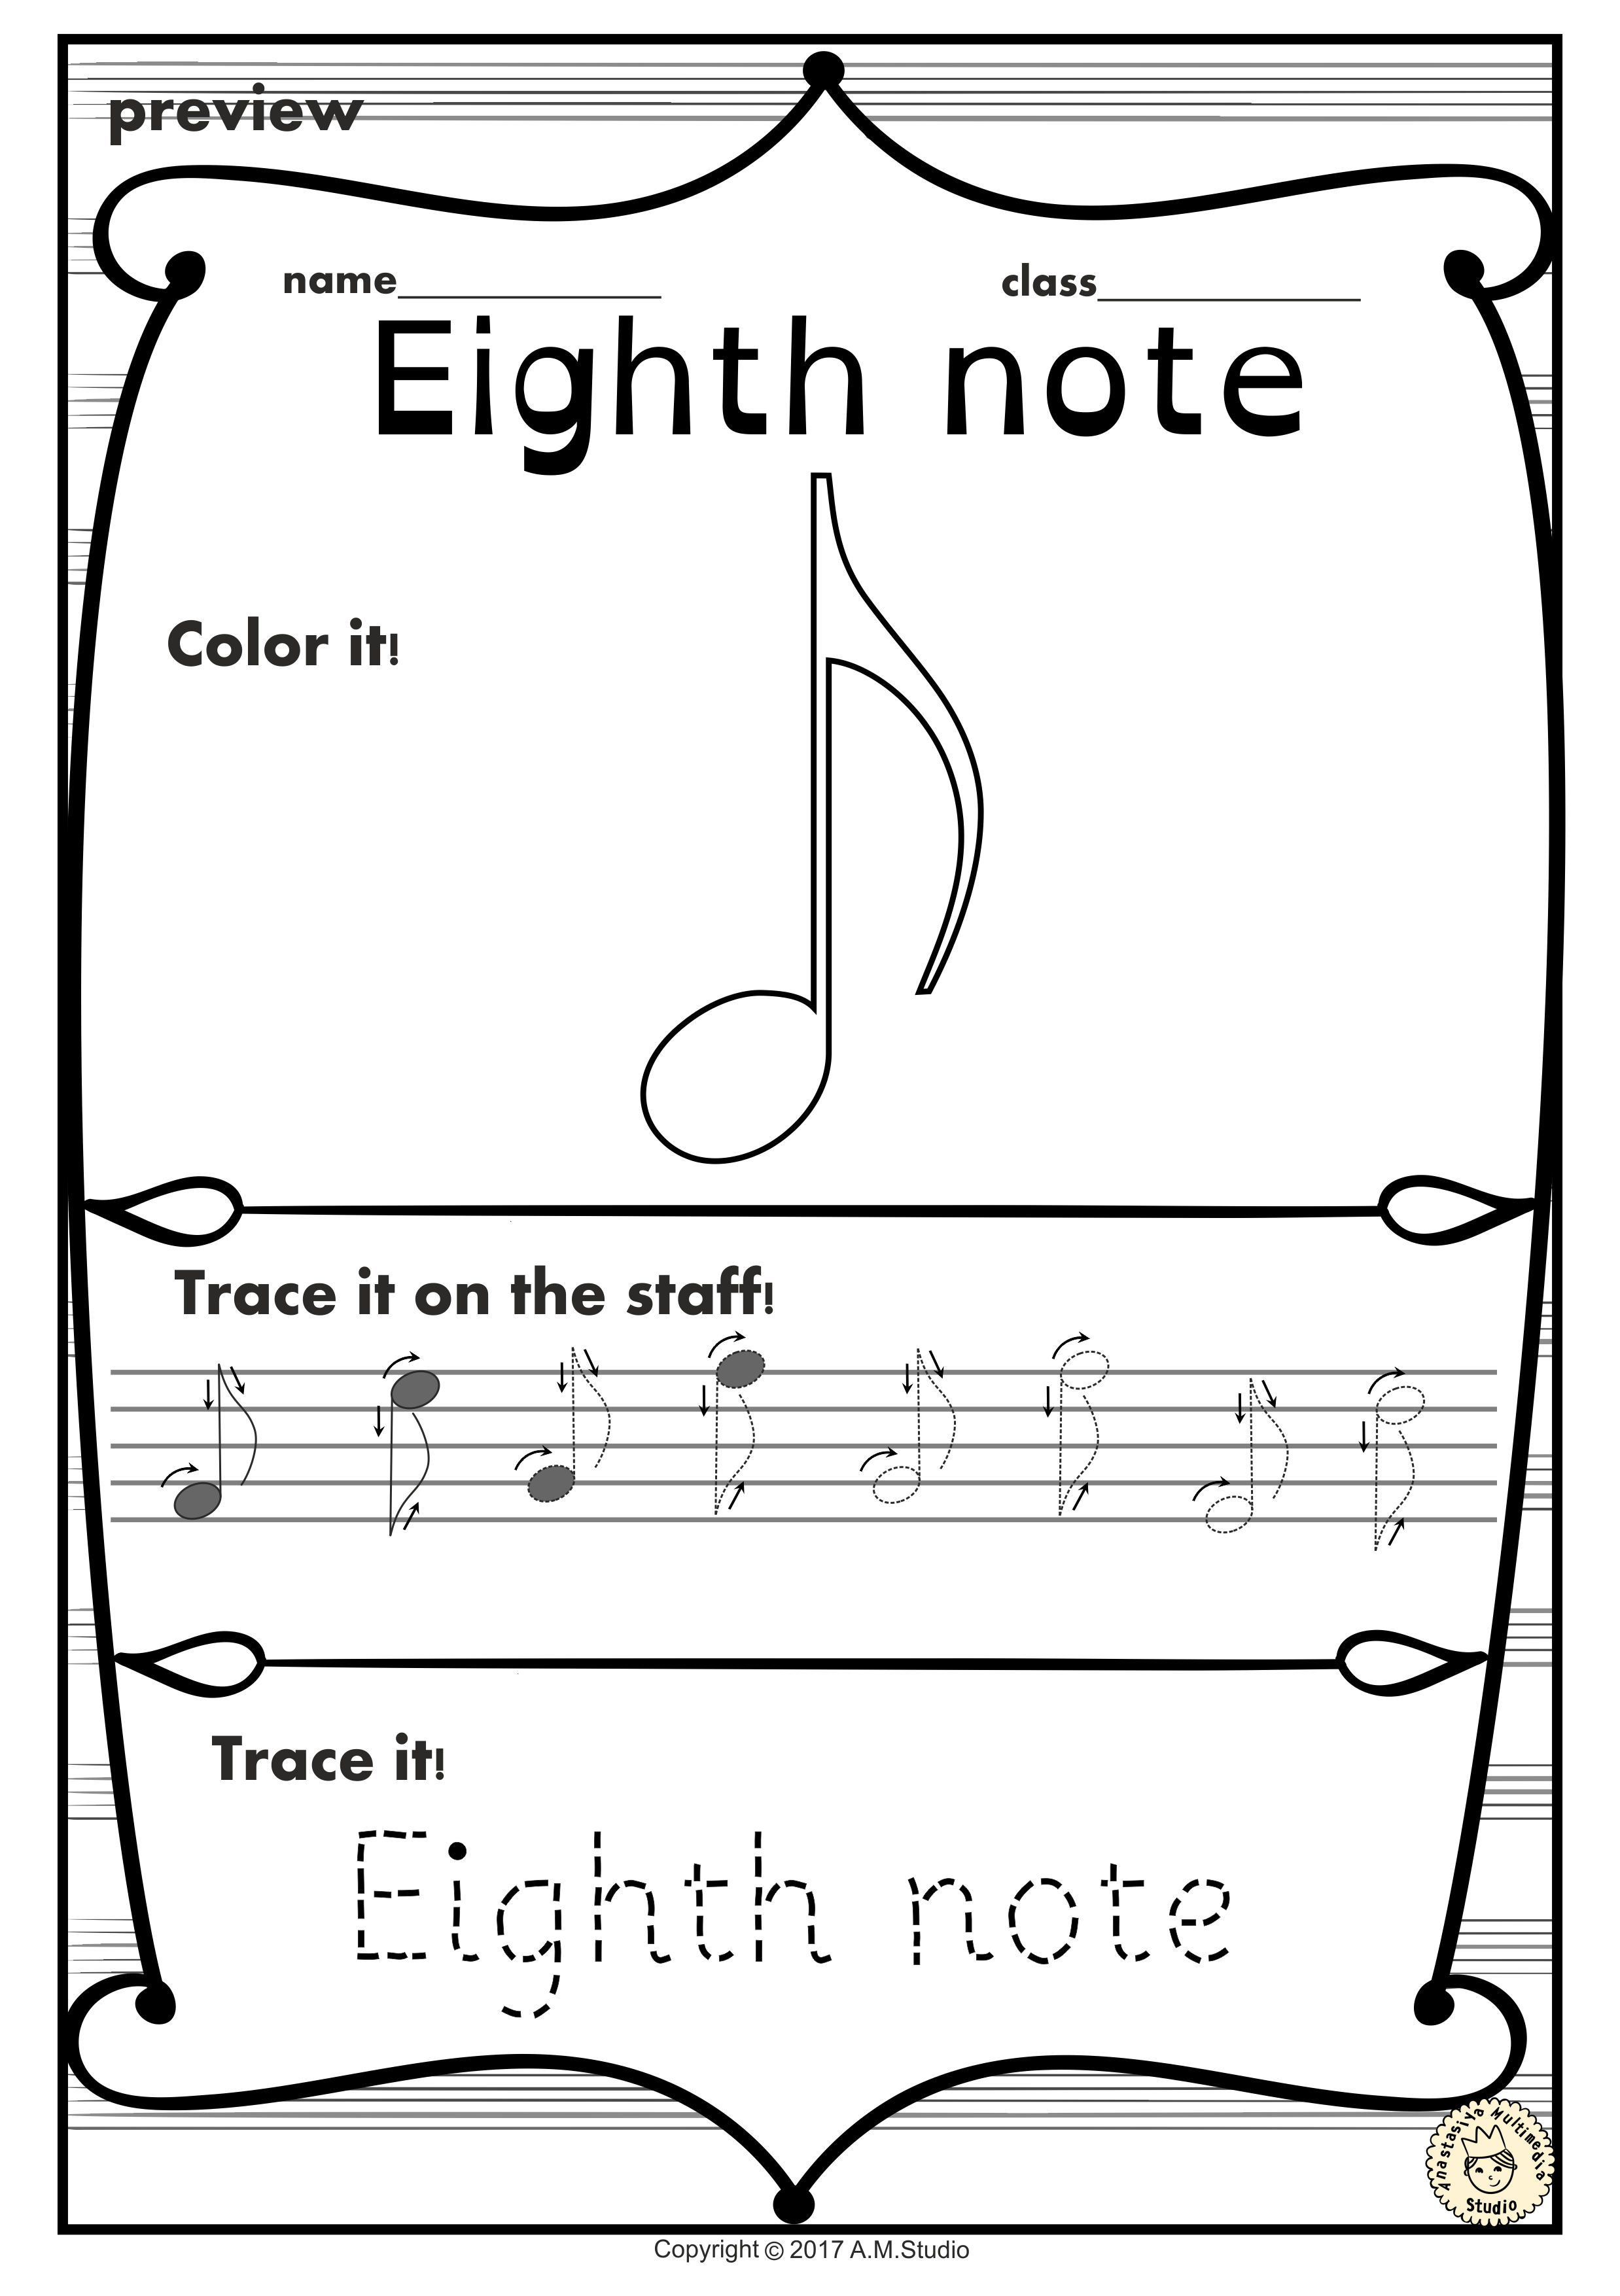 A Set Of 19 Music Worksheets Is Created To Help Your Students Learn Music Symbols Notes And